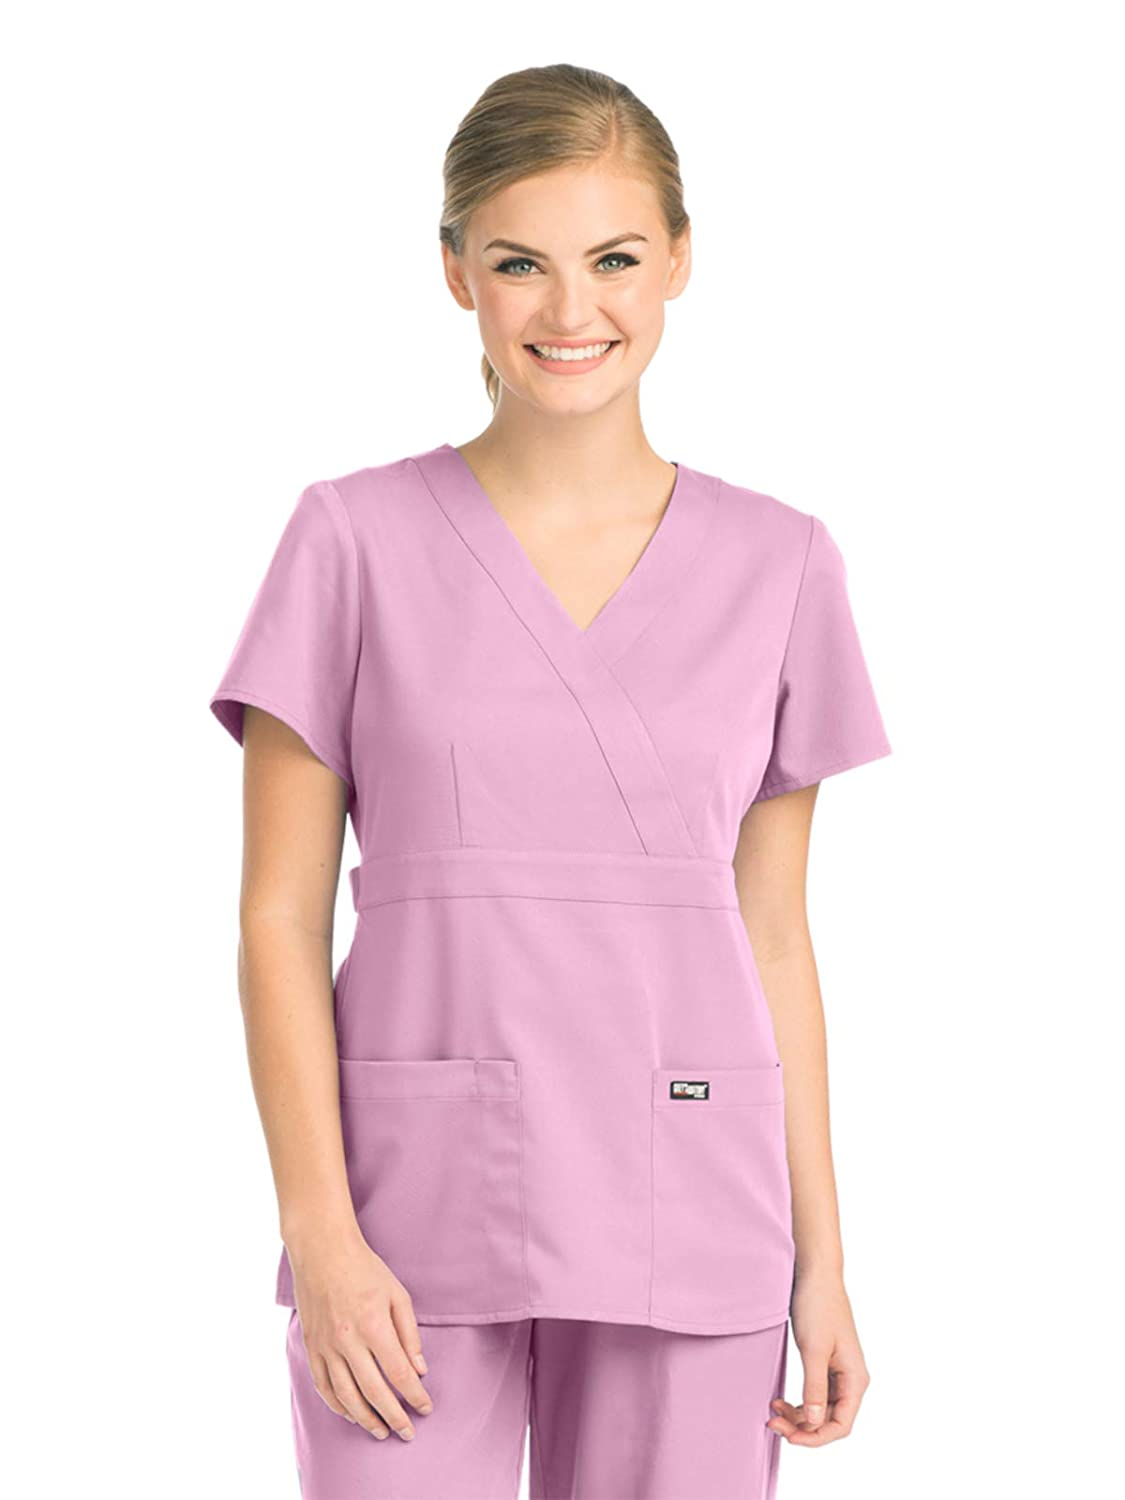 Barco Grey's Anatomy 4153 Women's Mock Wrap Scrub Top